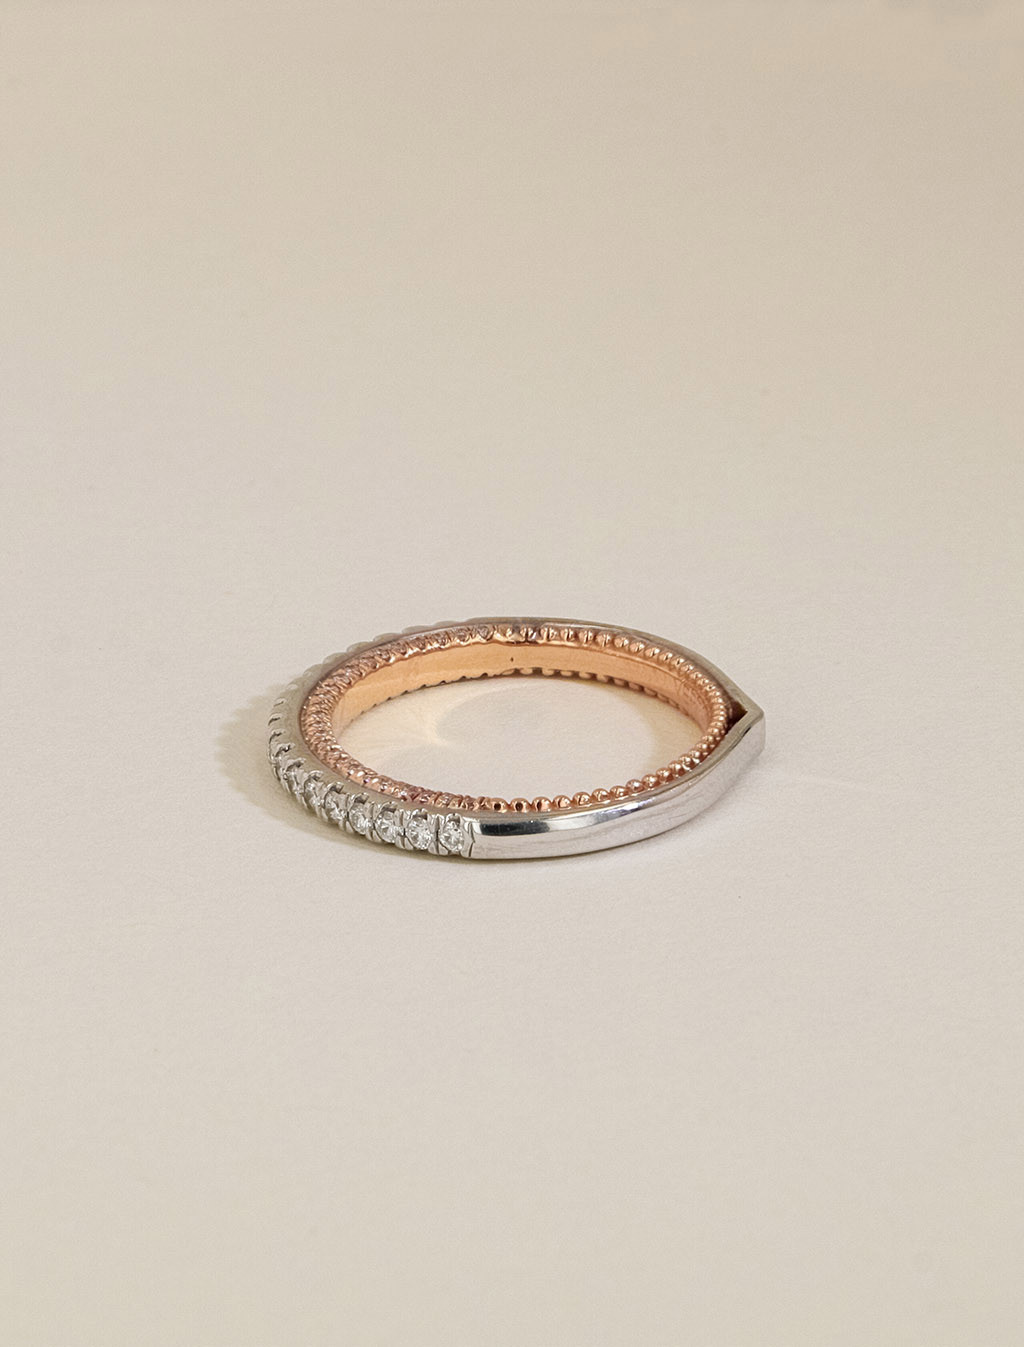 Verragio Couture Diamond Wedding Band in White and Rose Gold side view